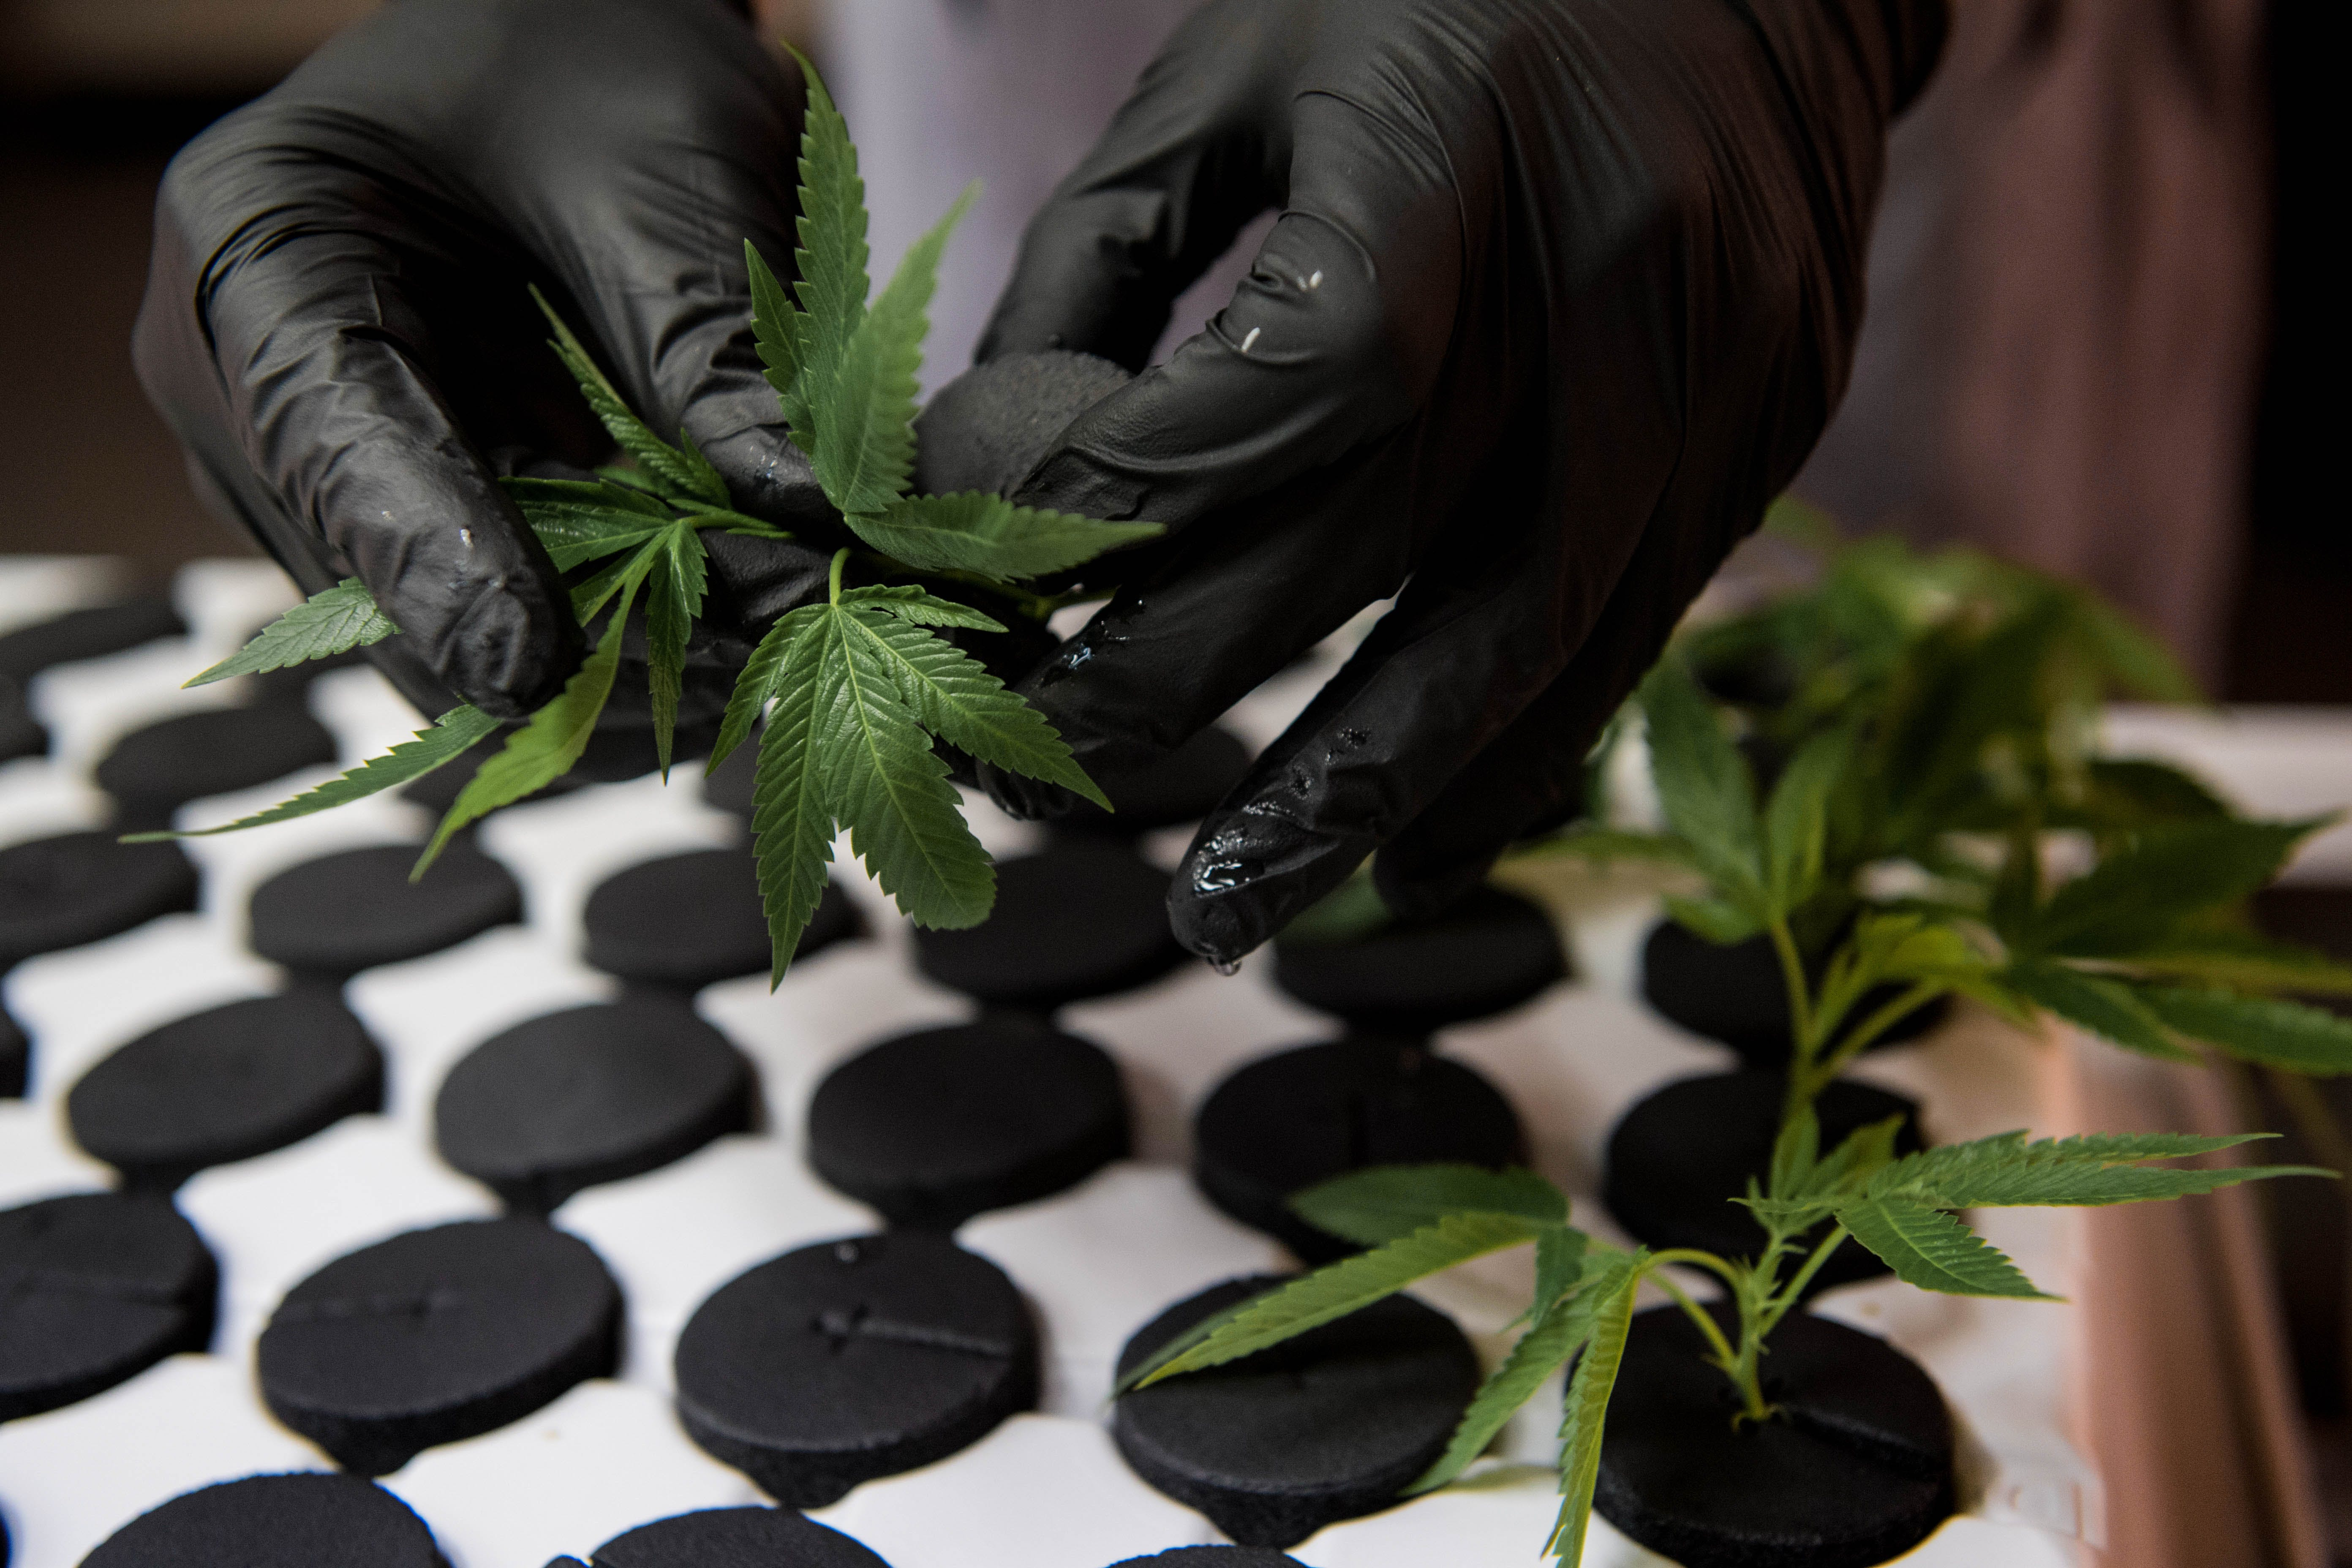 This Company Wants to Spray Cannabis With DNA Tracking Markers7 This Company Wants to Spray Cannabis With DNA Tracking Markers